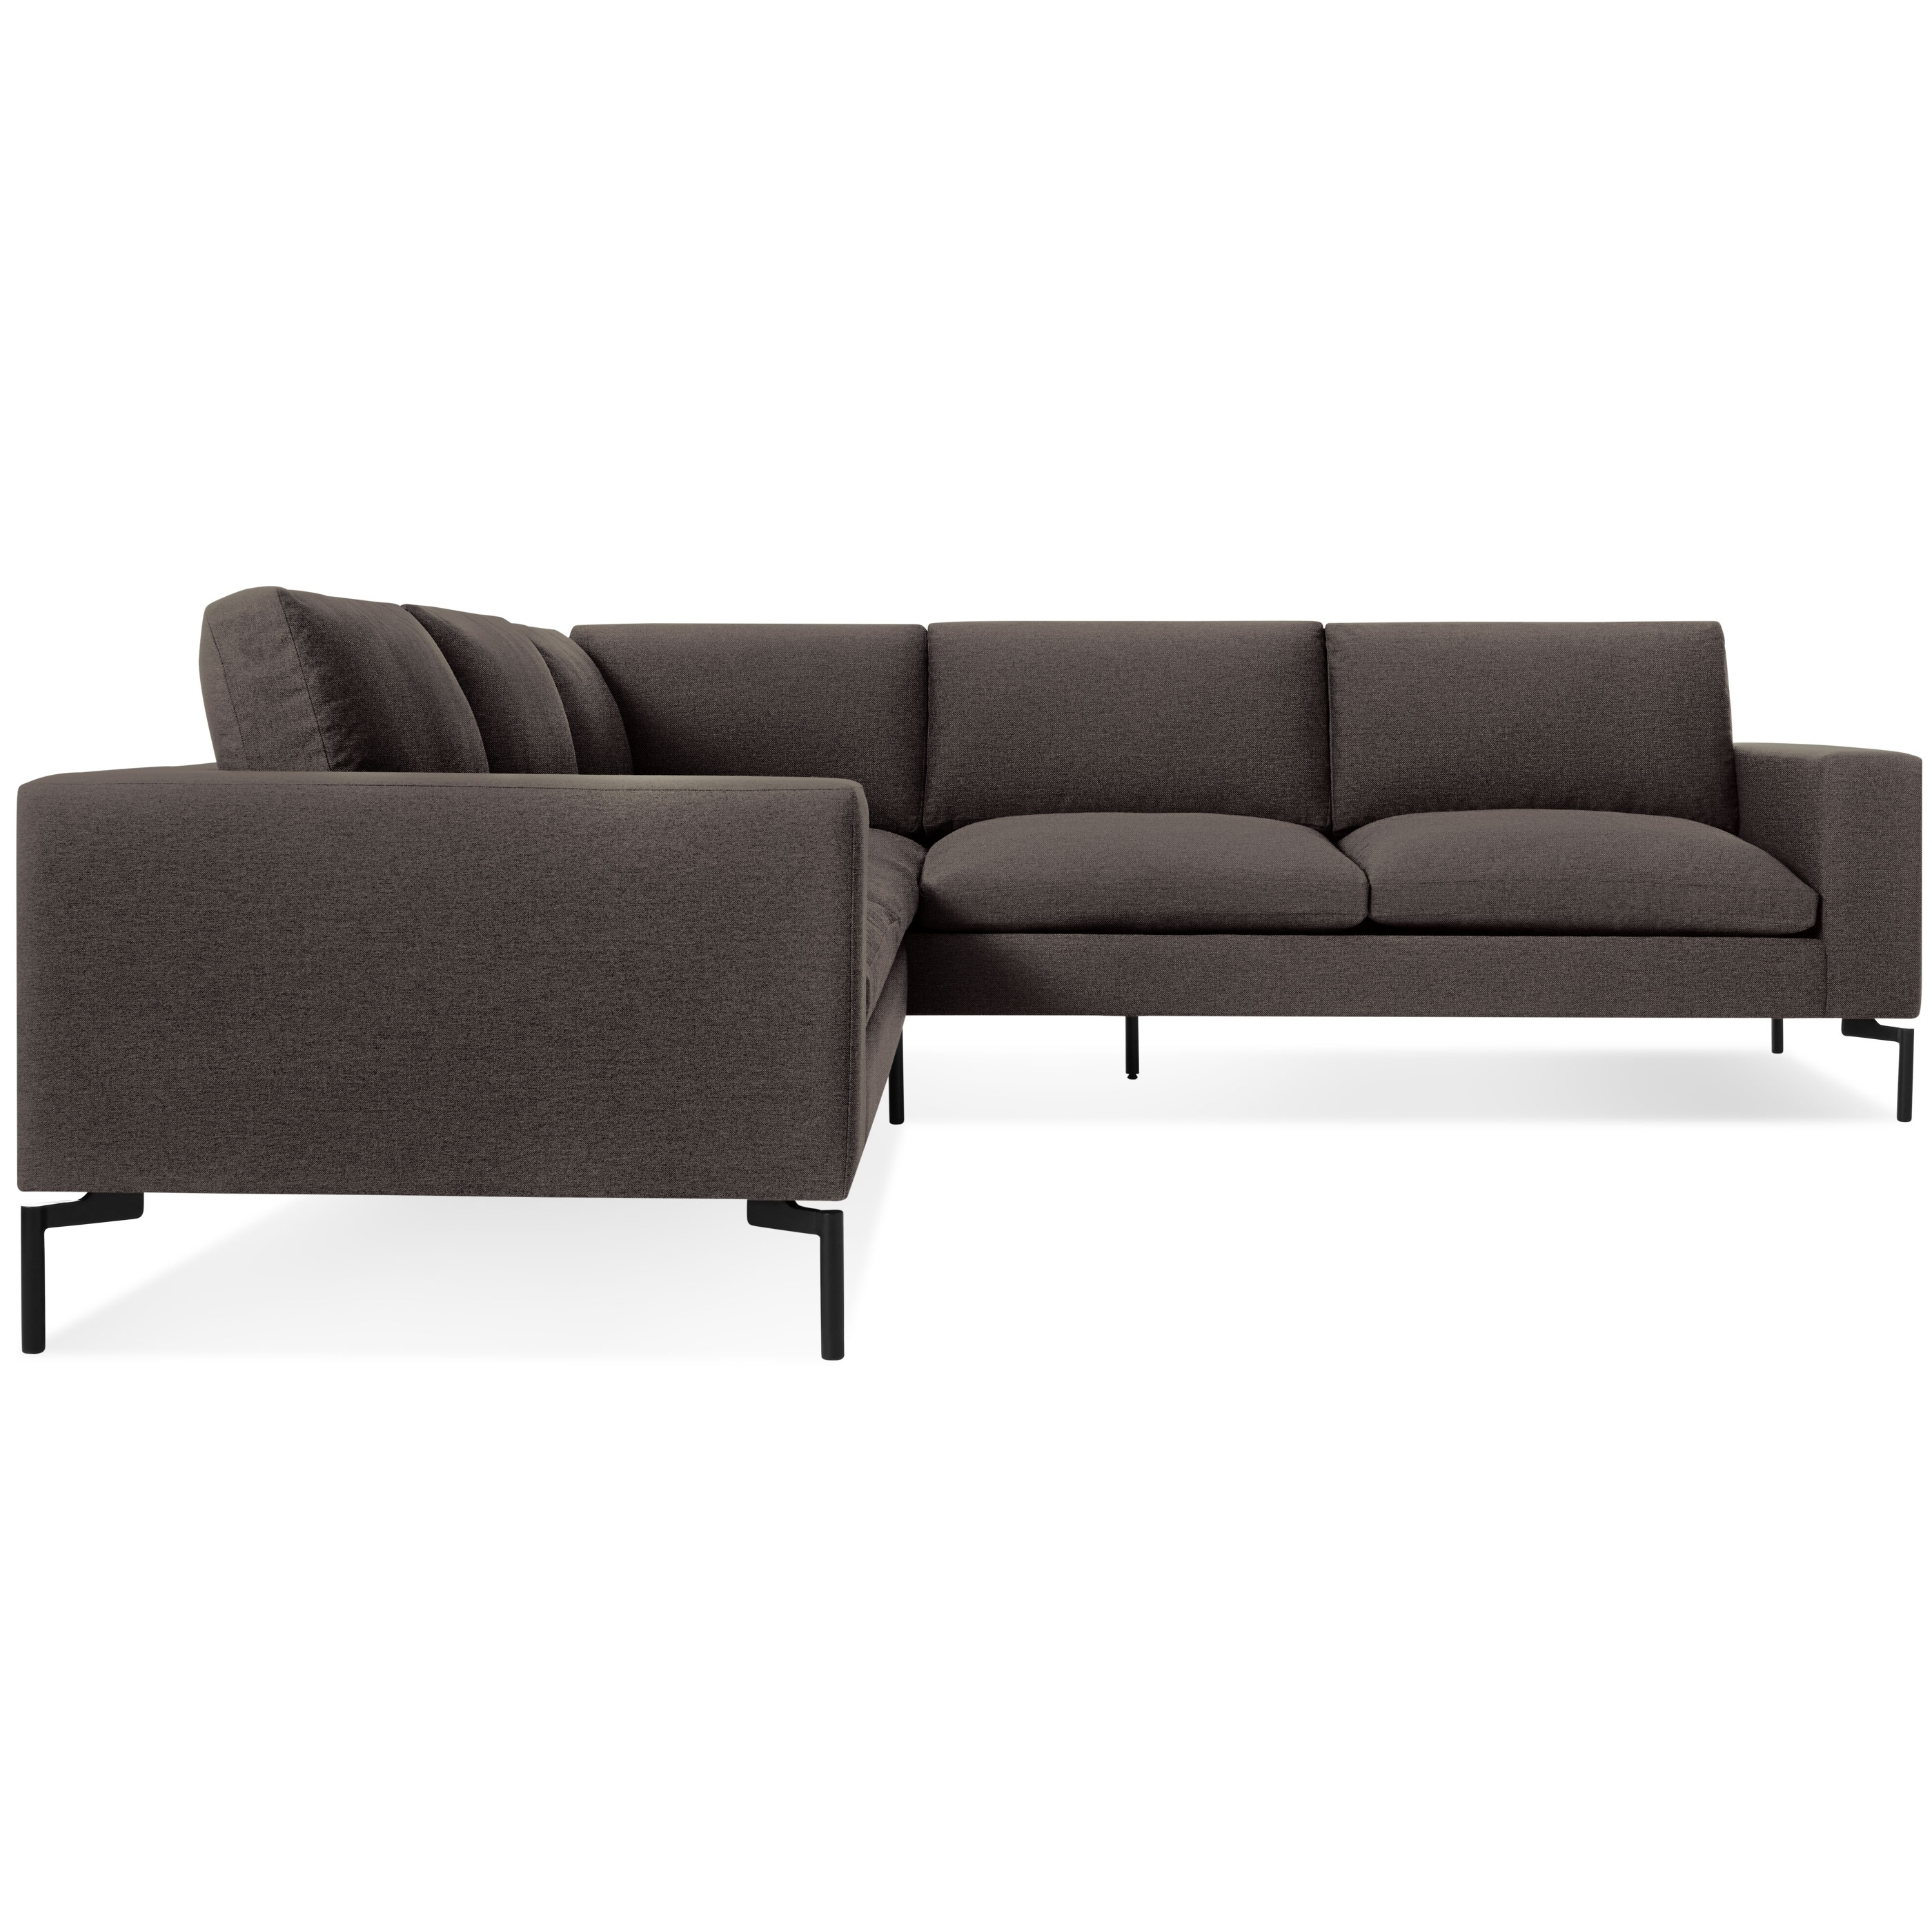 New Standard Small Sectional Sofa   Modern Sofas | Blu Dot In Newfoundland Sectional Sofas (Photo 2 of 10)